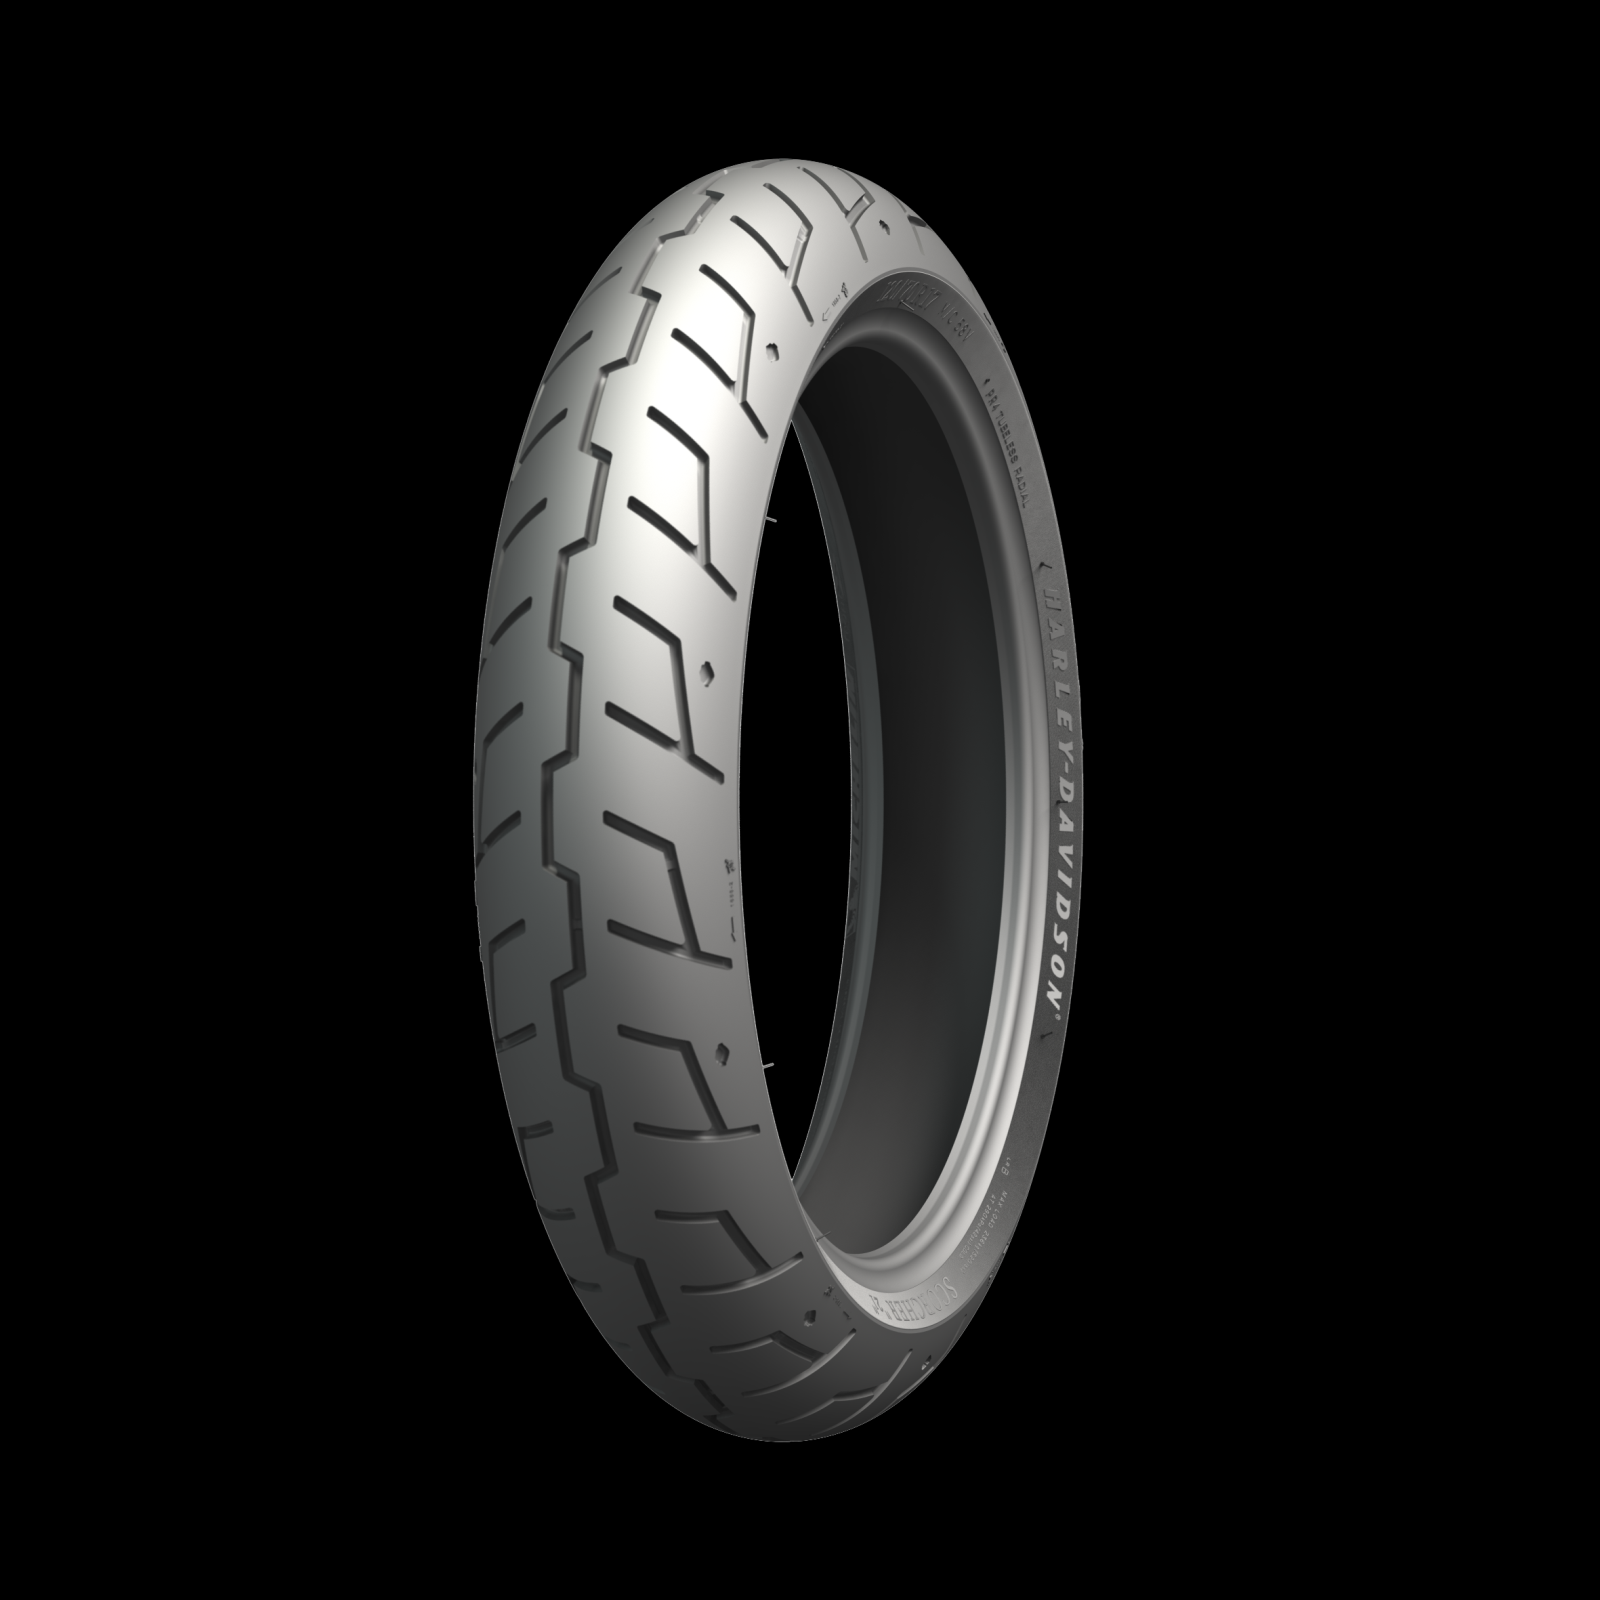 MICHELIN_Scorcher21_120_70_R17_front_3_4.png